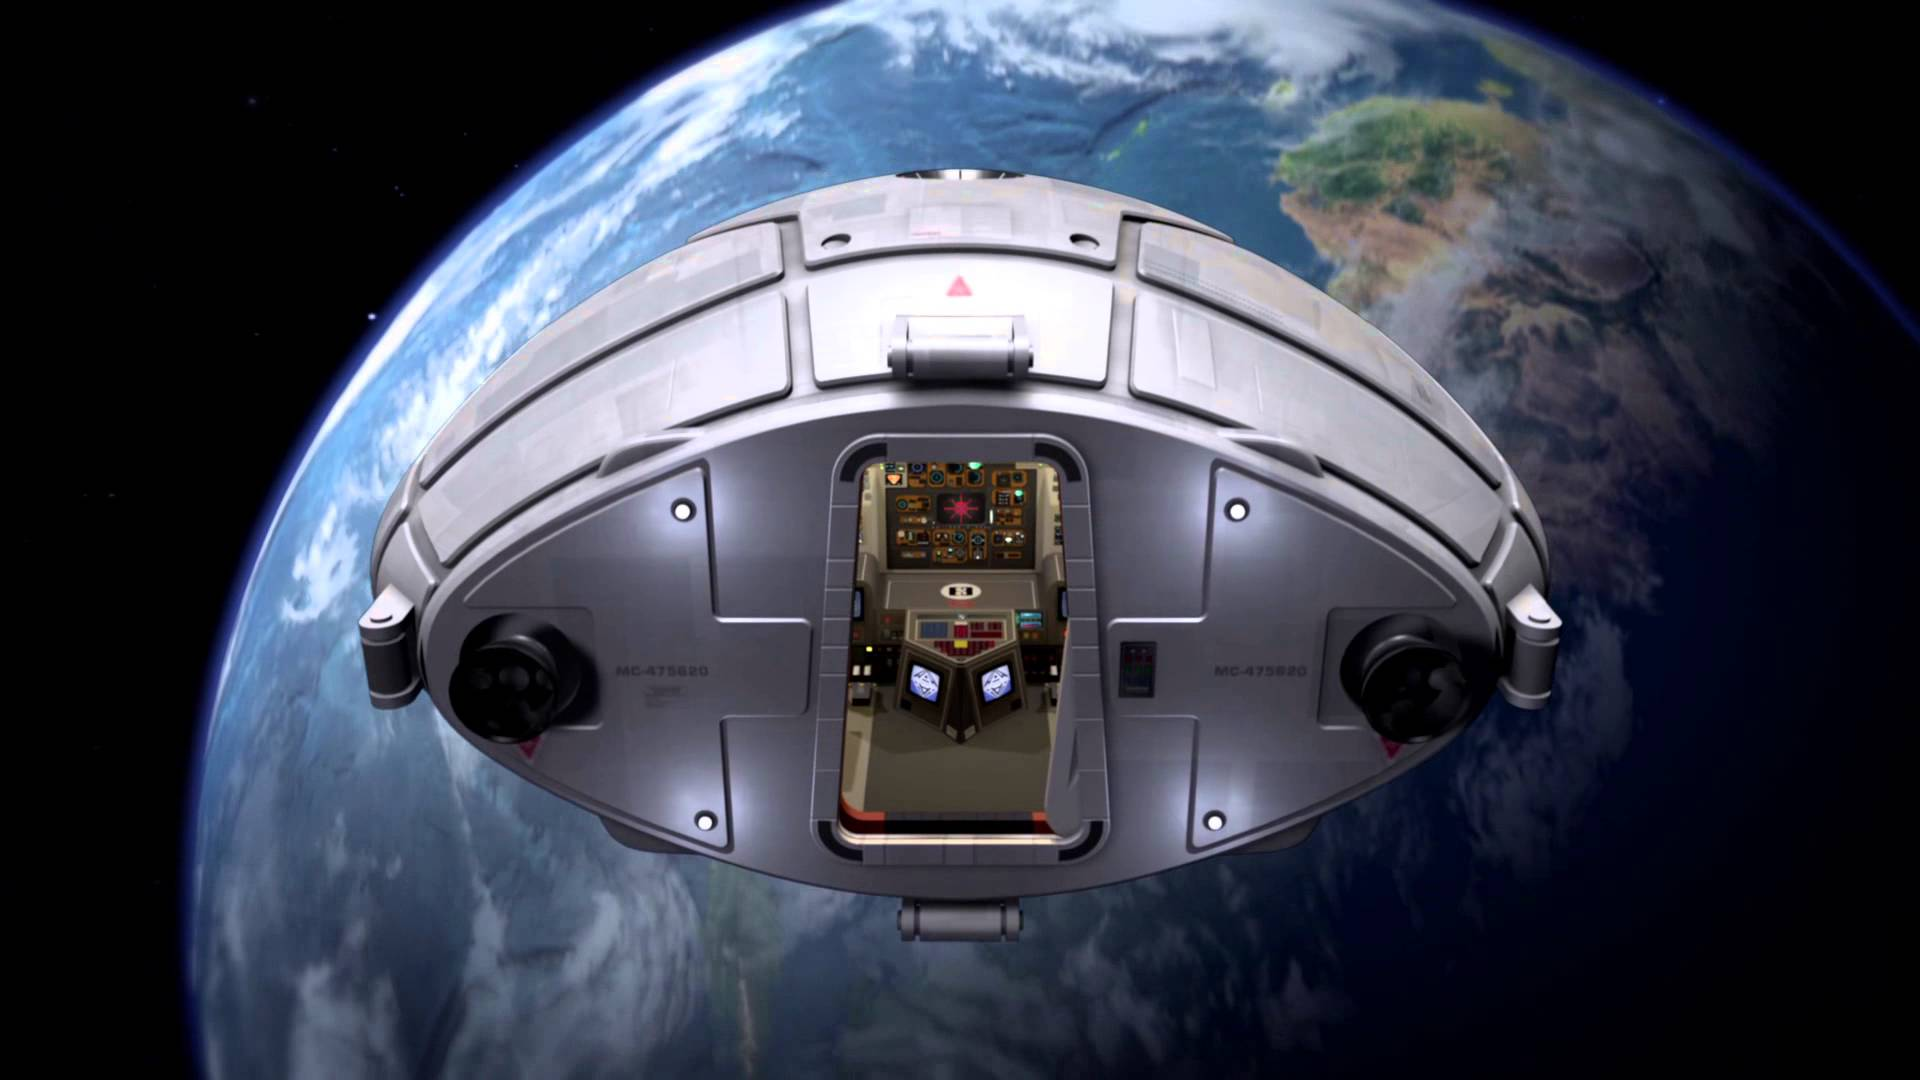 Space 1999 Eagle Command Module 1920x1080